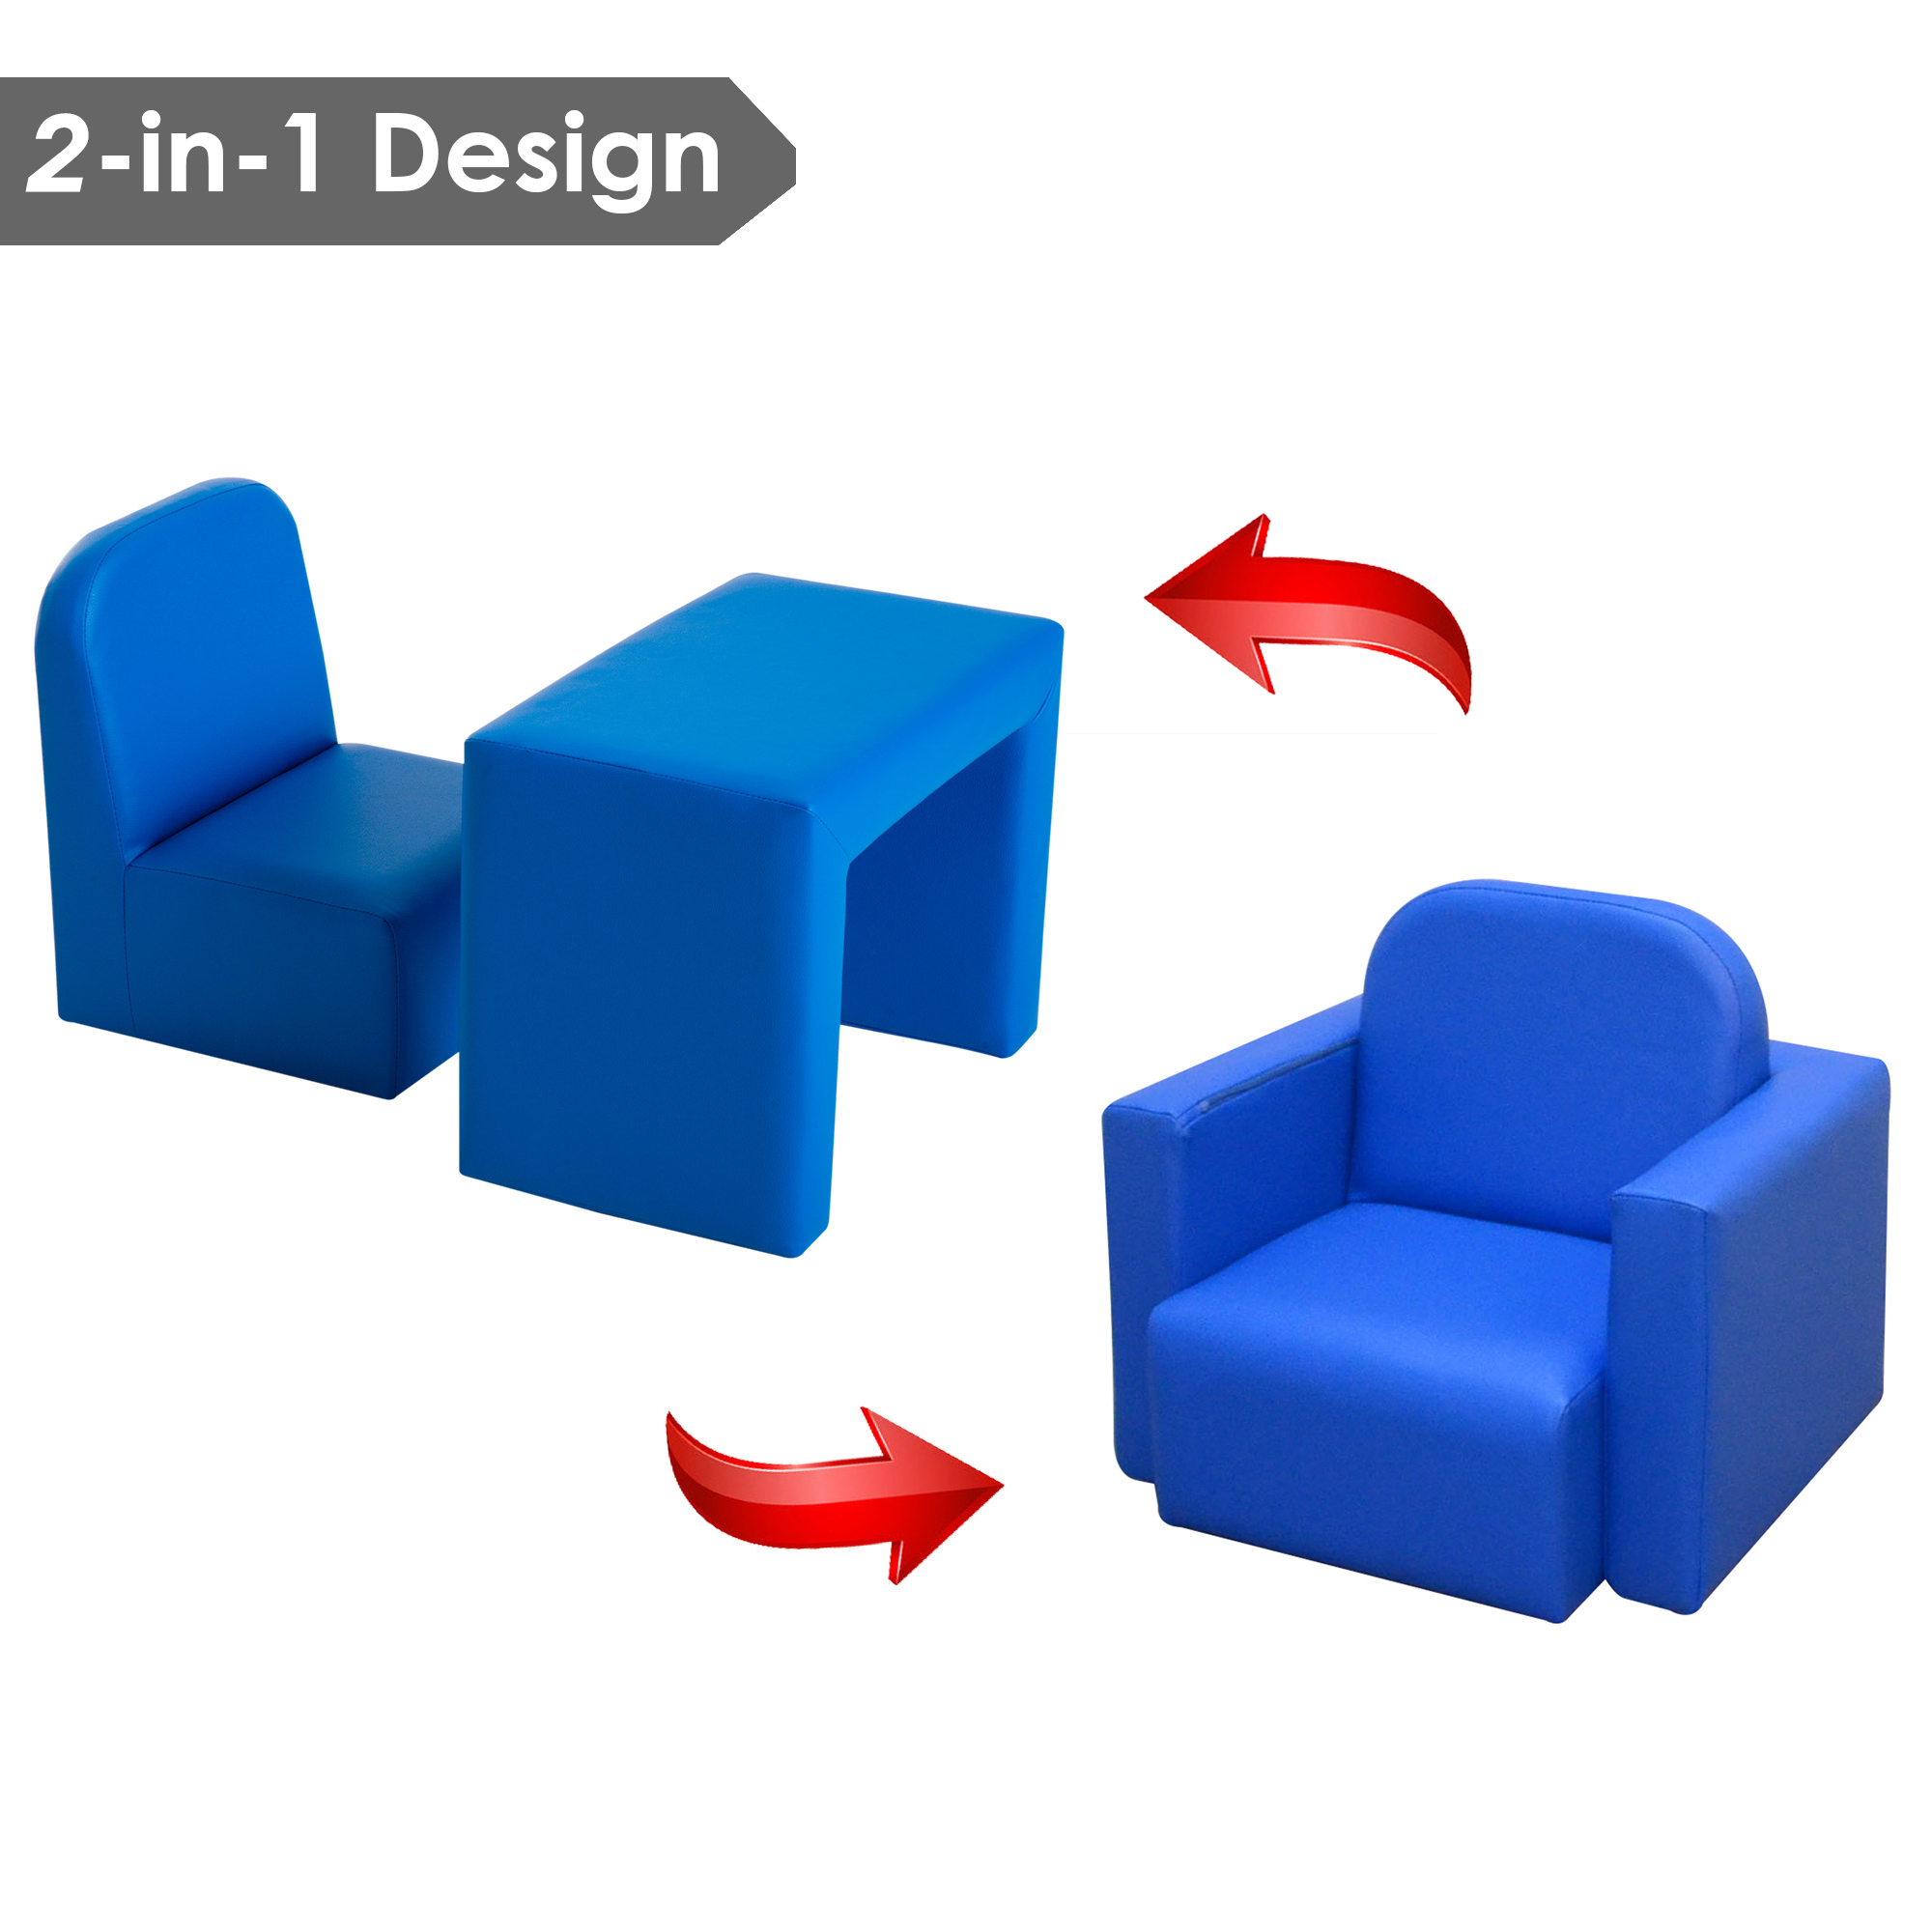 Boys Chair Details About Kids Mini Sofa 3 In 1 Table Chair Set Armchair Seat Relax Children Girl Boys